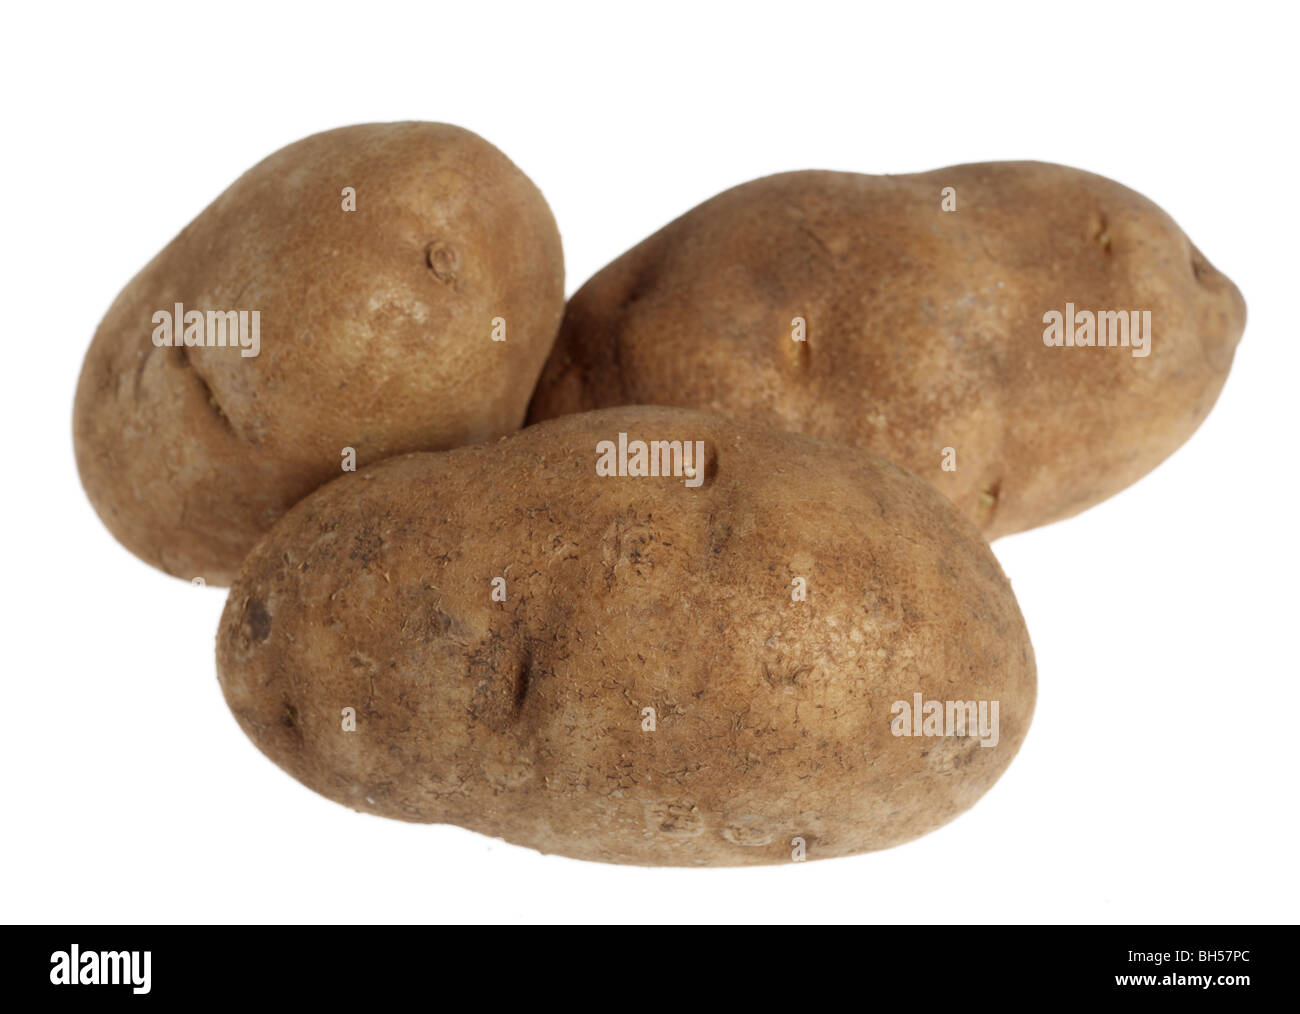 Three russet potatoes over a white background - Stock Image